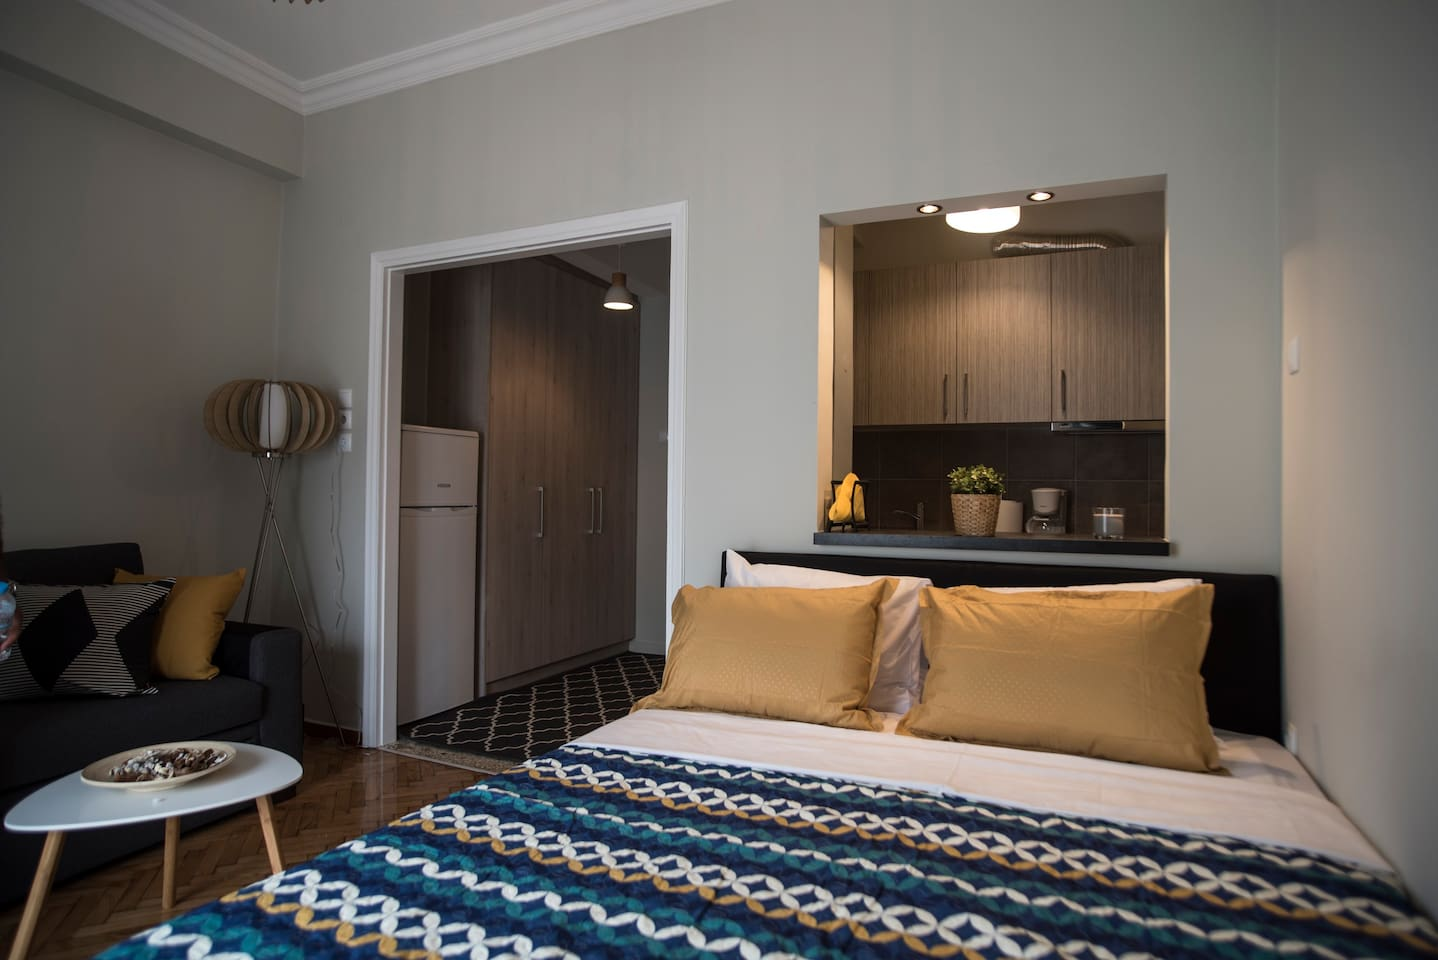 Modern refurbished studio in the centre of Athens, 40sm2,  3rd floor, king size bed, double sofabed, open plan, fully equiped kitchen, fridge, balcony, access to 3  underground & railway stations in 5-7 minutes (walking distance) , accomodates 2-4 people (upon request)